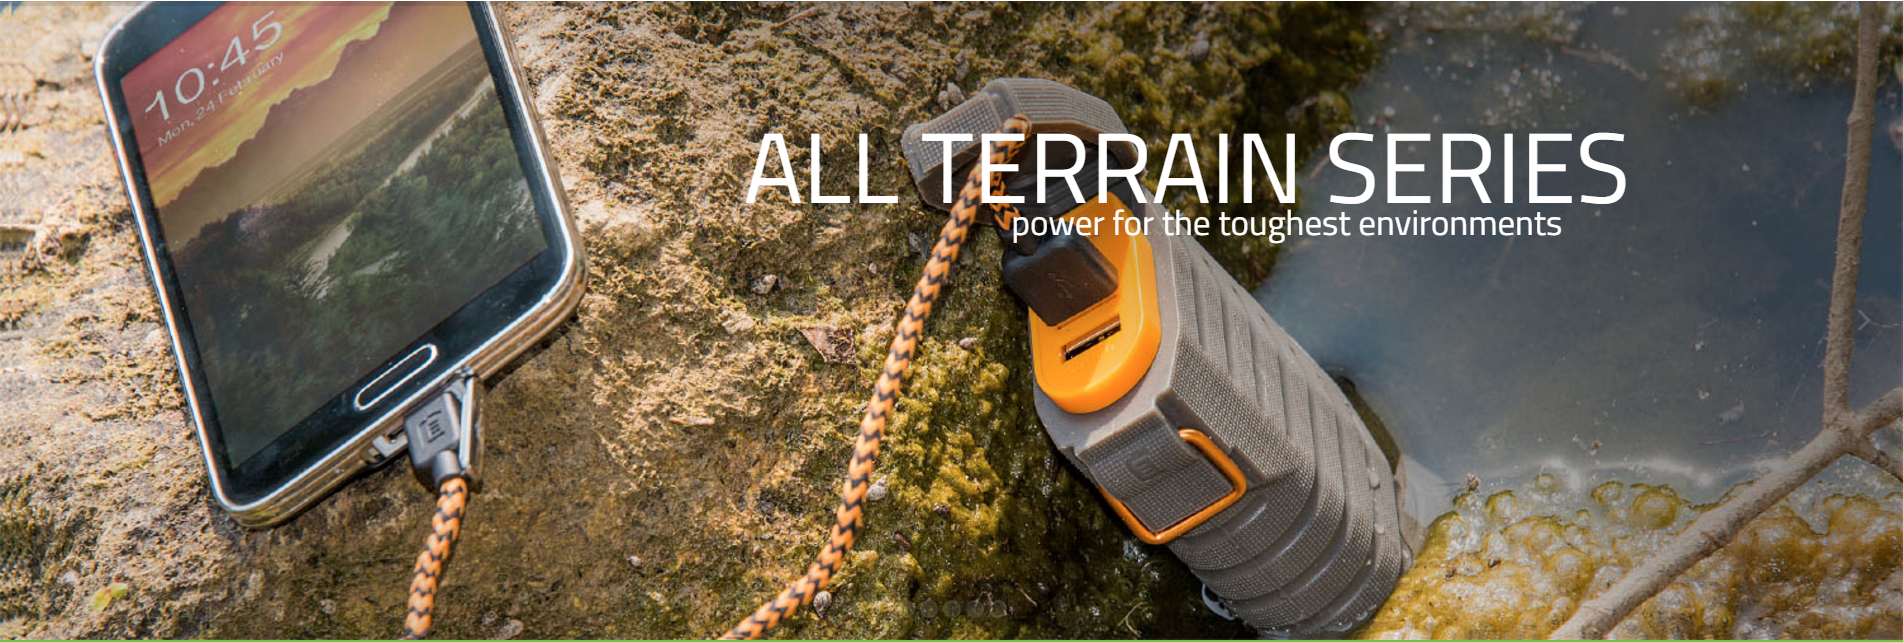 All Terrain Series - Power for the toughest environments